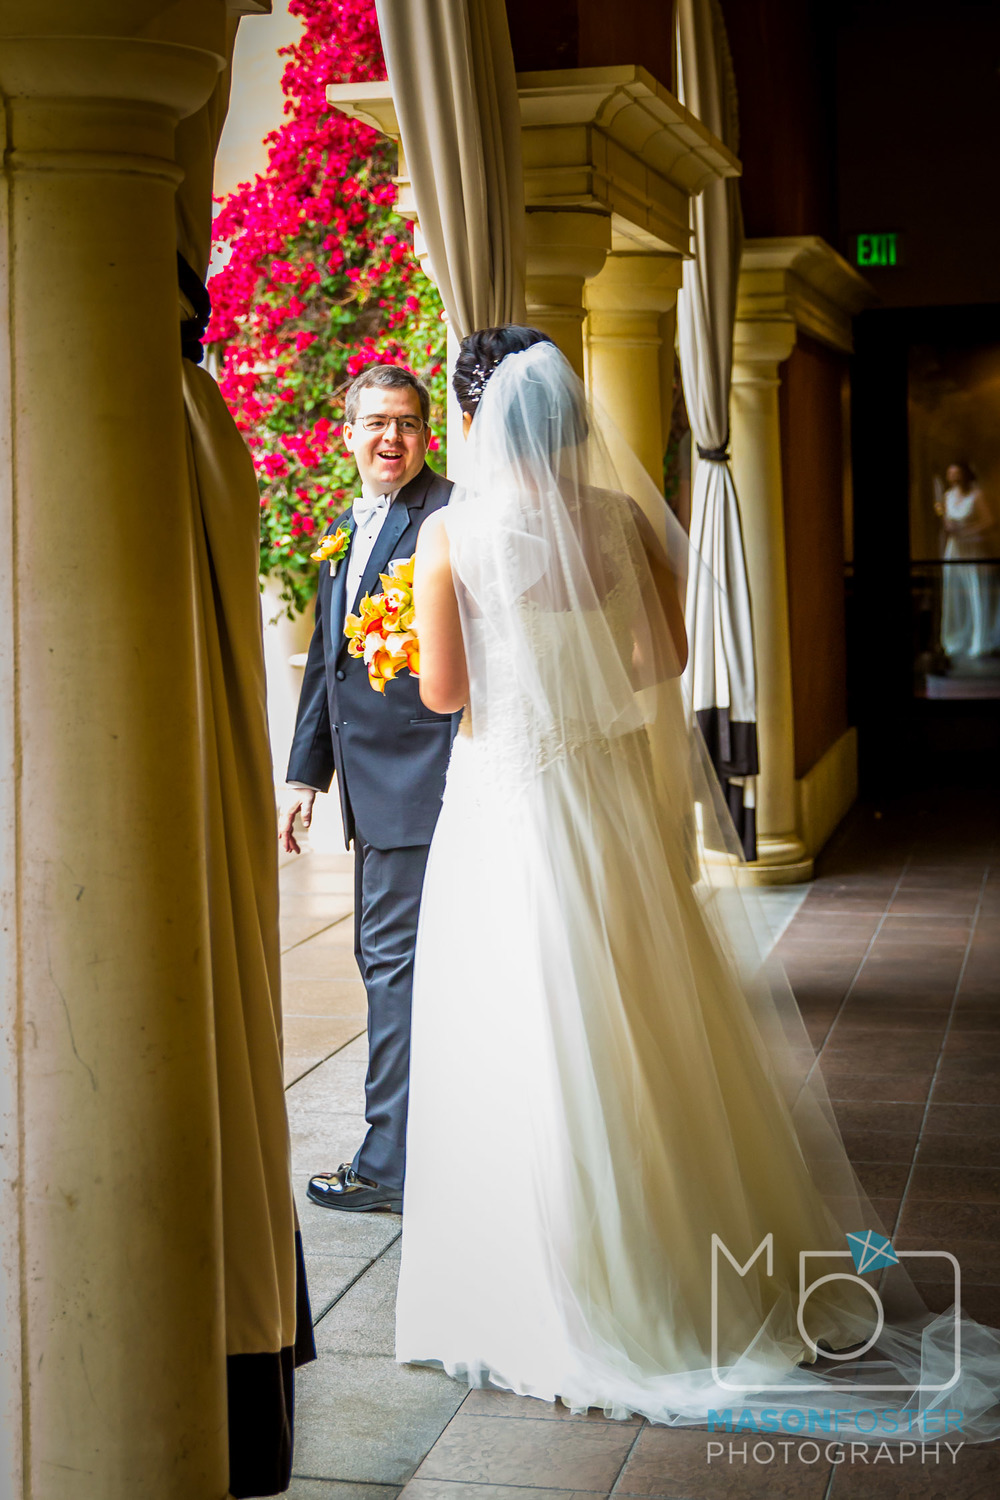 Their first look in the courtyard of the Hotel Valencia in Santana Row.